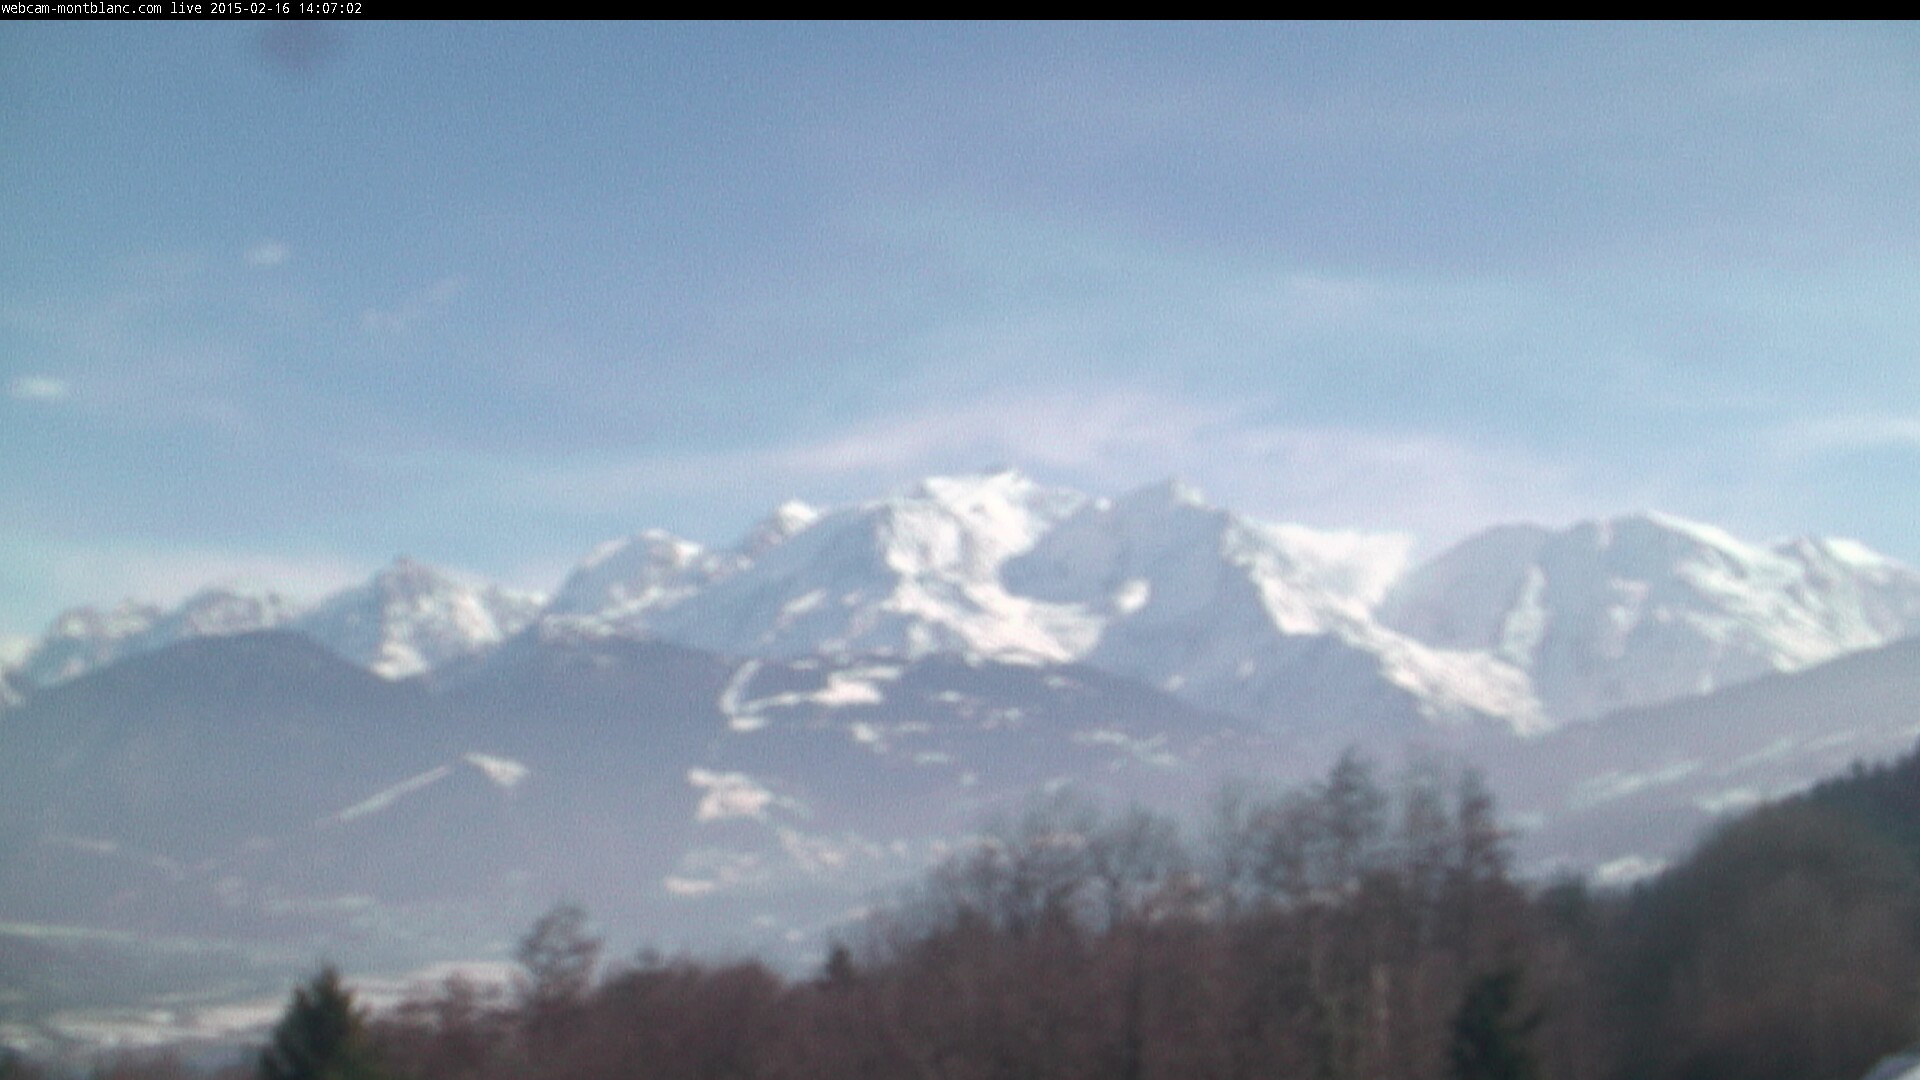 Webcam du Mont-Blanc